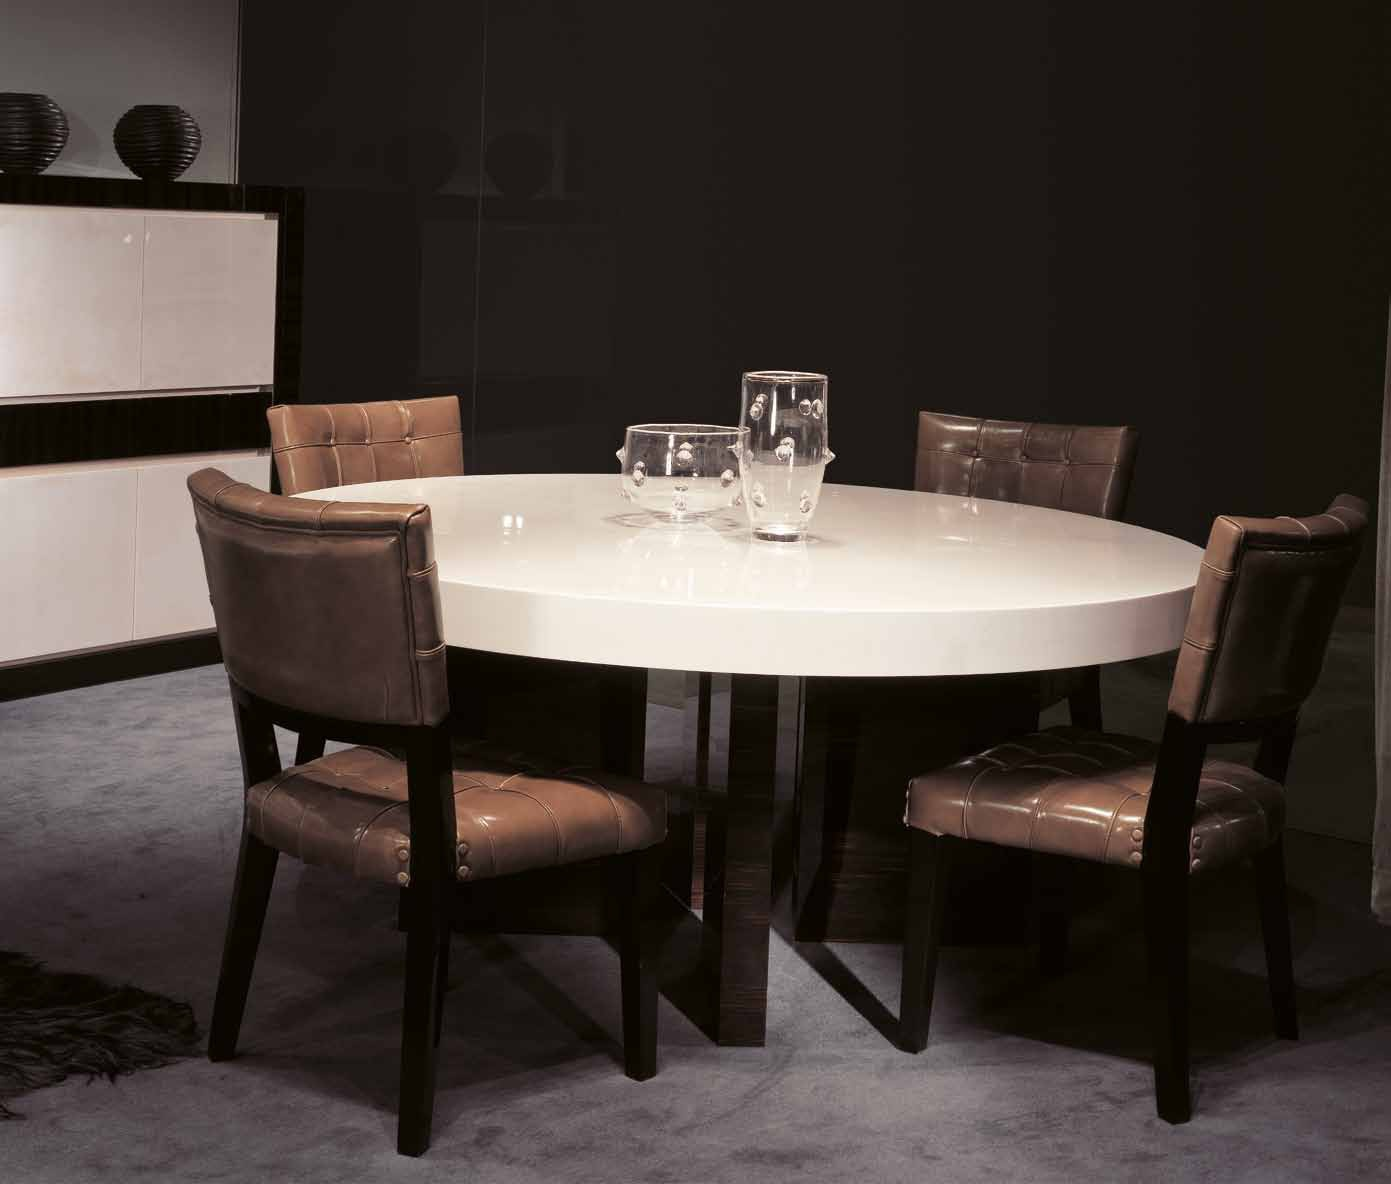 Bel Furniture Dining Table Bel 201 Tage Dining Table Reviews Wayfair Uk 17 Best Images About